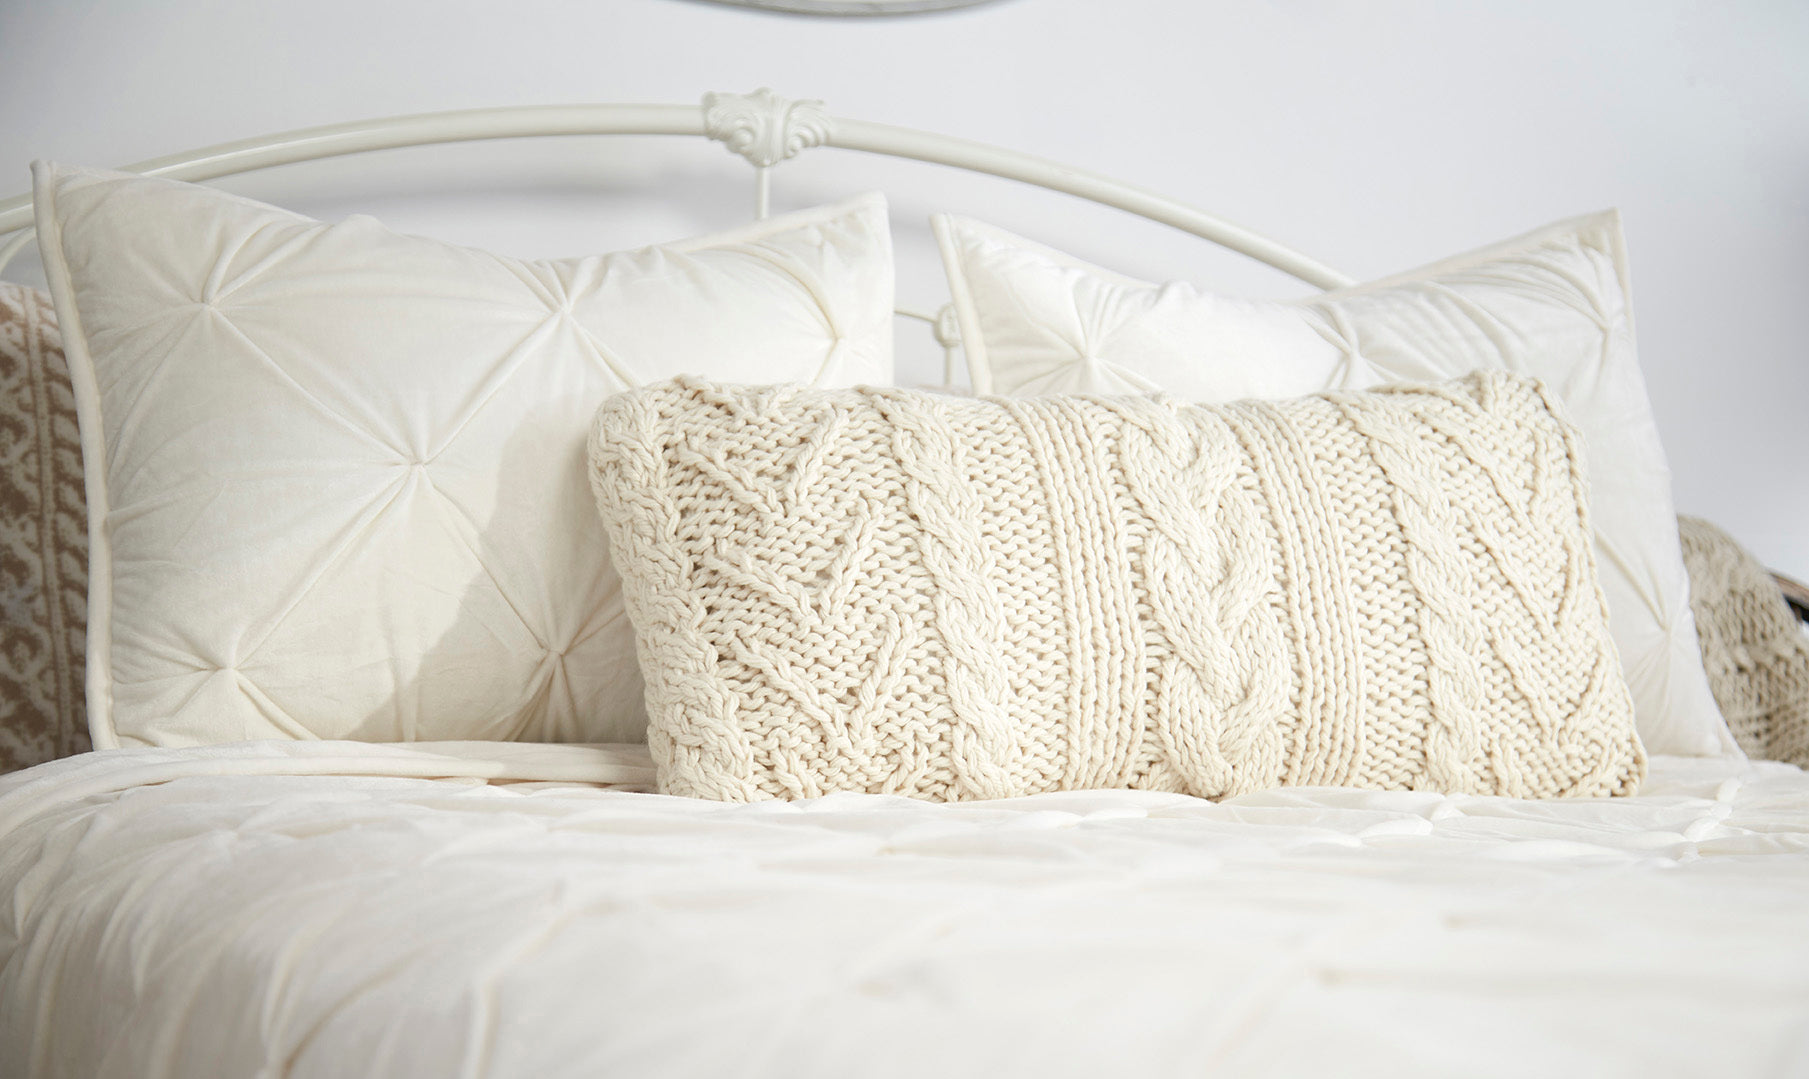 Farmhouse Style Collection - Pin-tuck Comforter